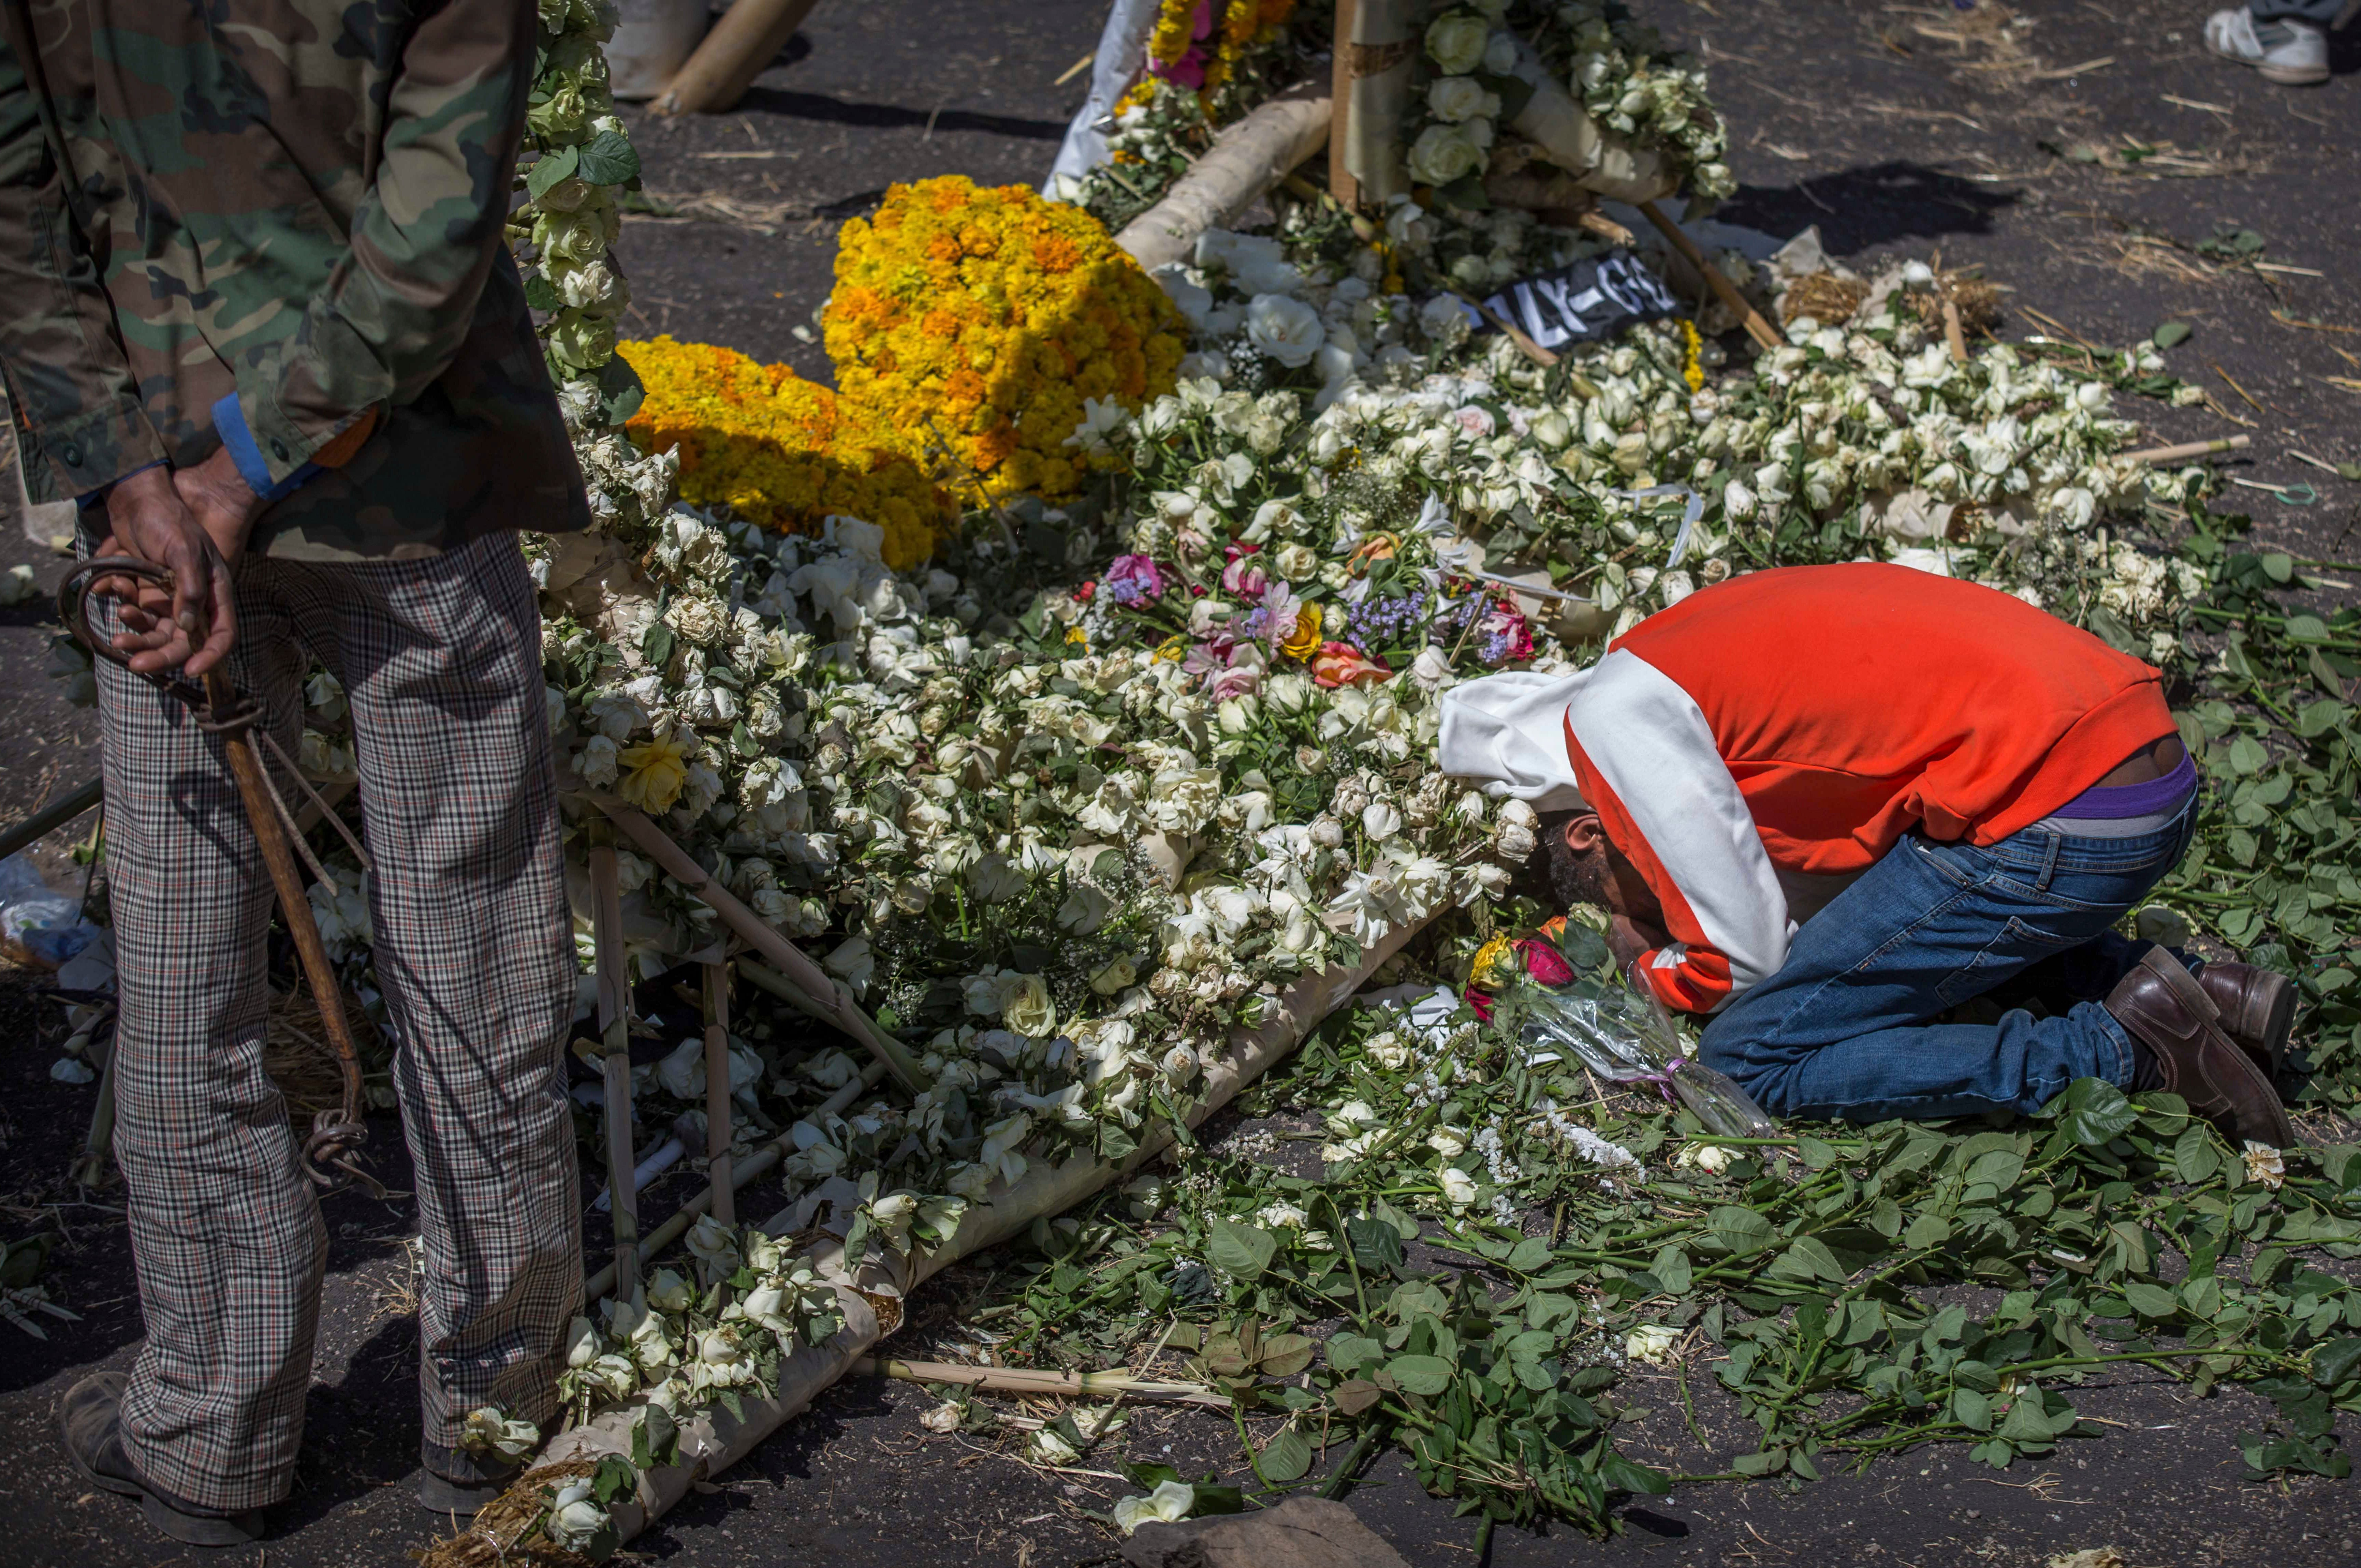 A relative of a crash grieves next to a floral tribute at the scene where the Ethiopian Airlines Boeing 737 Max 8 crashed shortly after takeoff March 10, killing all 157 on board.